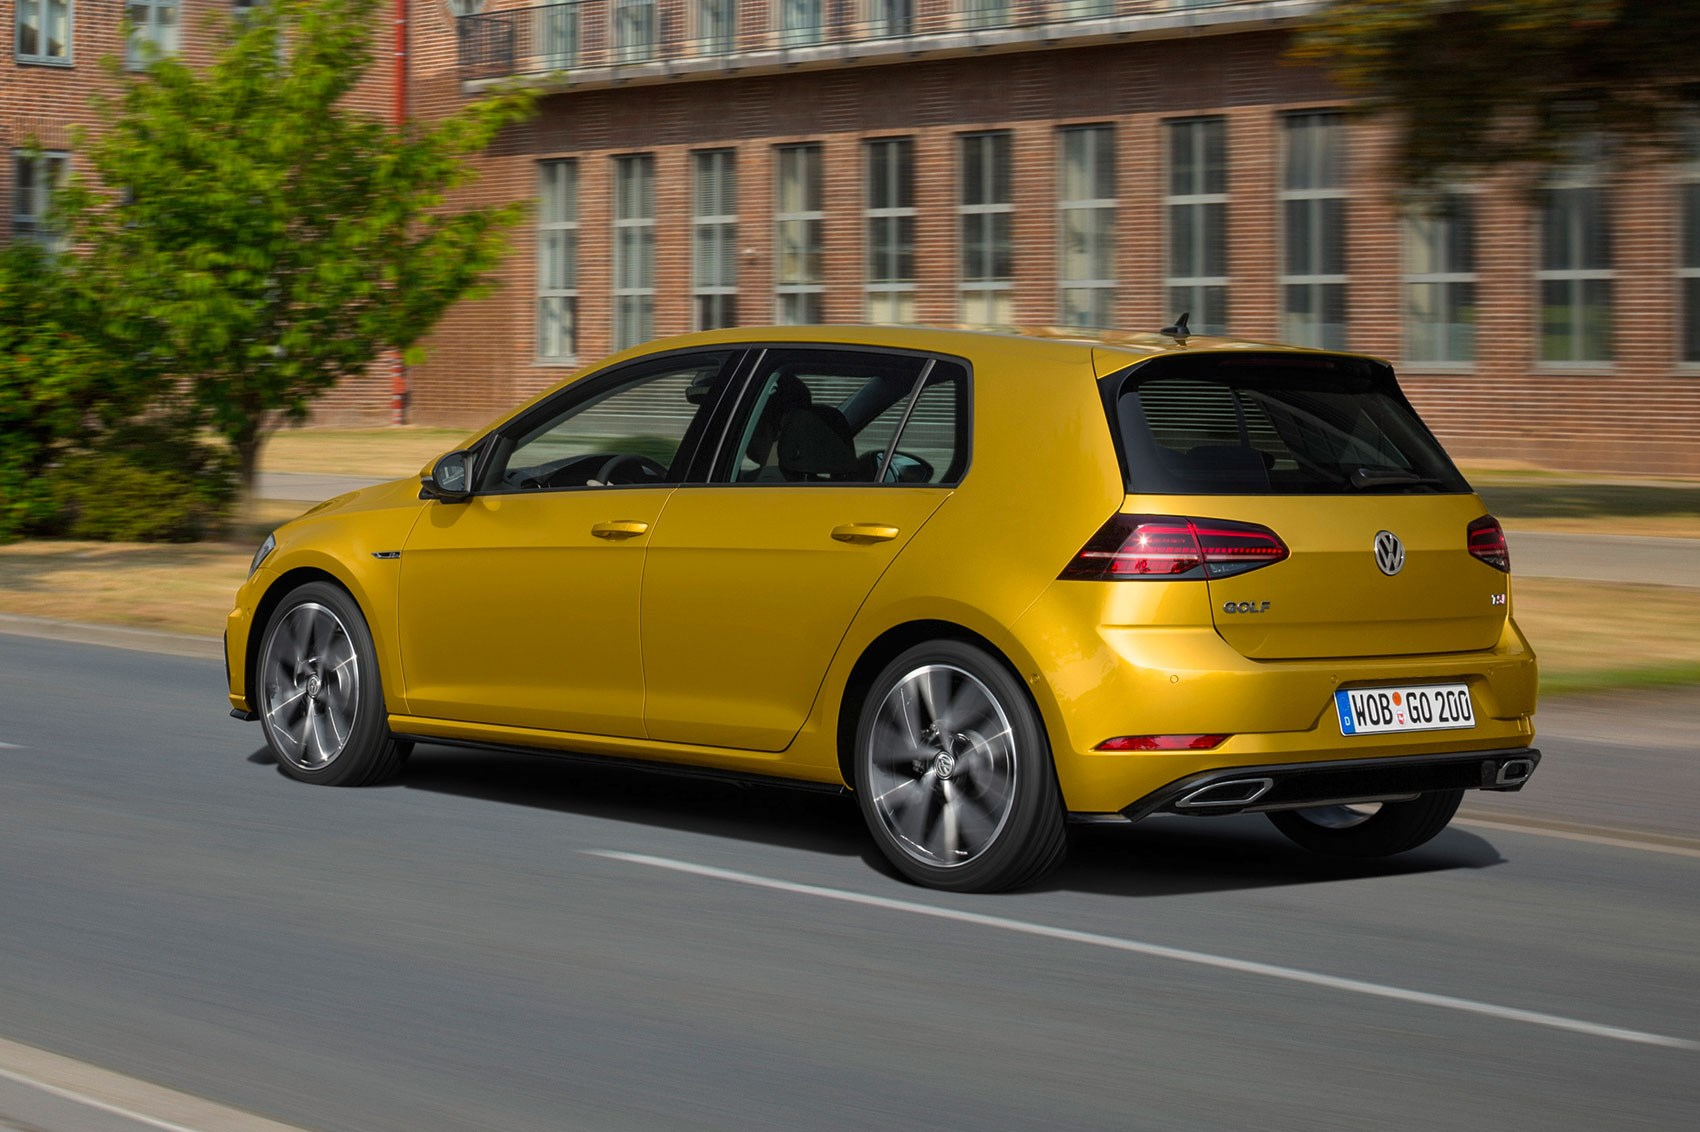 Seven Things You Need To Know About The Facelifted 2017 Vw Golf Go Back Gt Gallery For Parallel Circuit Definition Kids Volkswagen Mk7